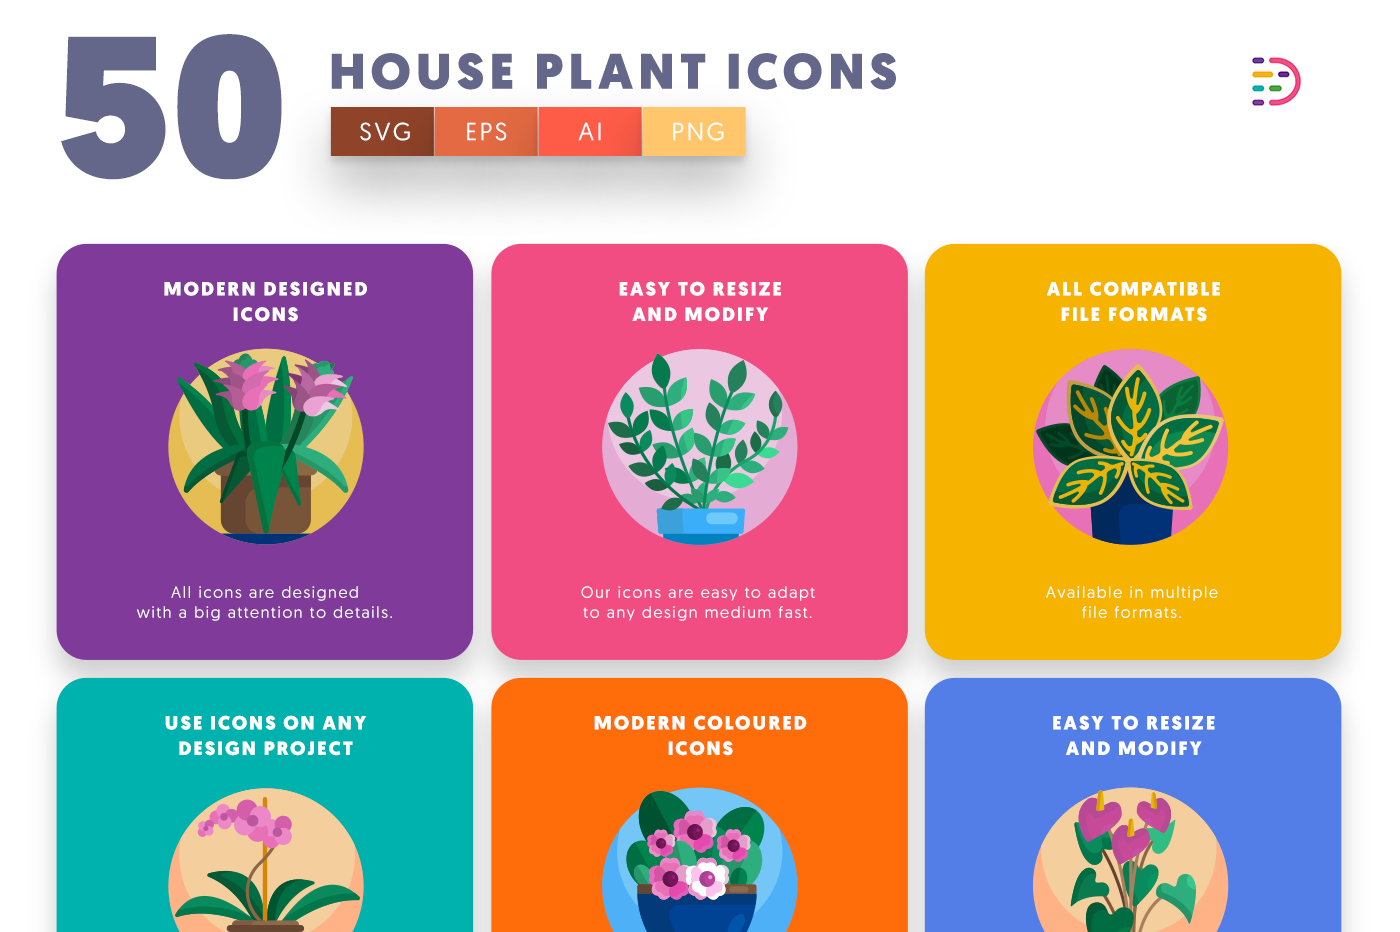 Full vector 50 House Plant Icons